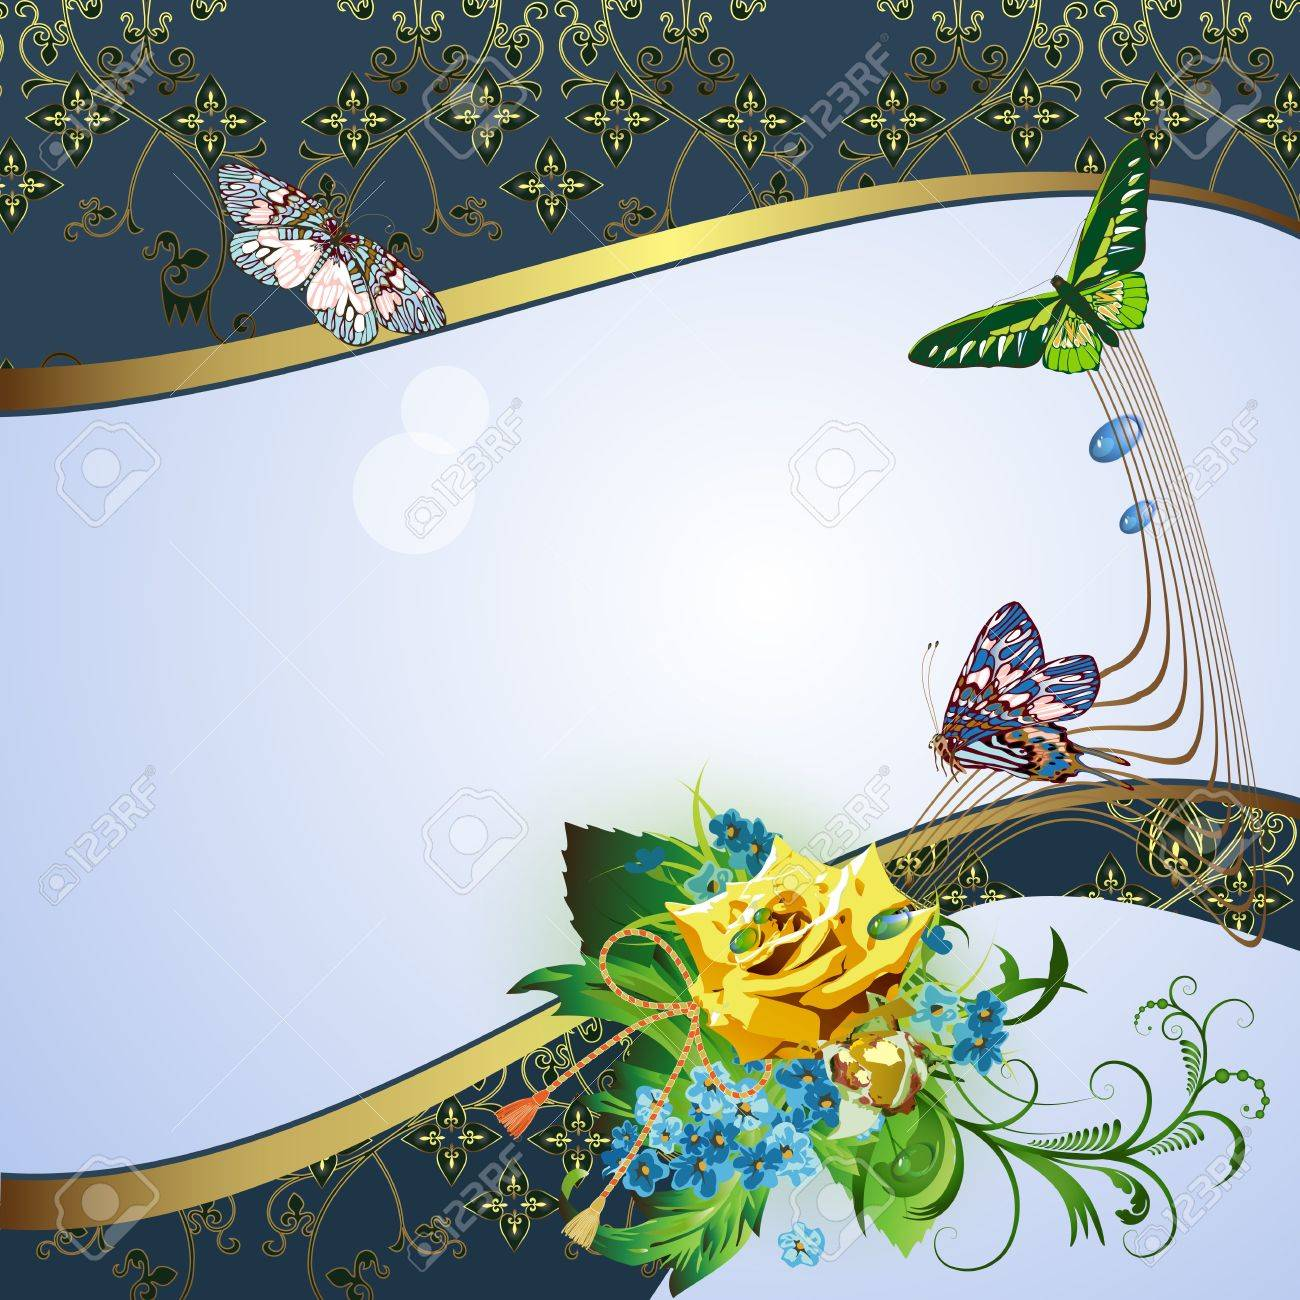 Background with yellow rose, cornflowers and butterflies Stock Vector - 12922028